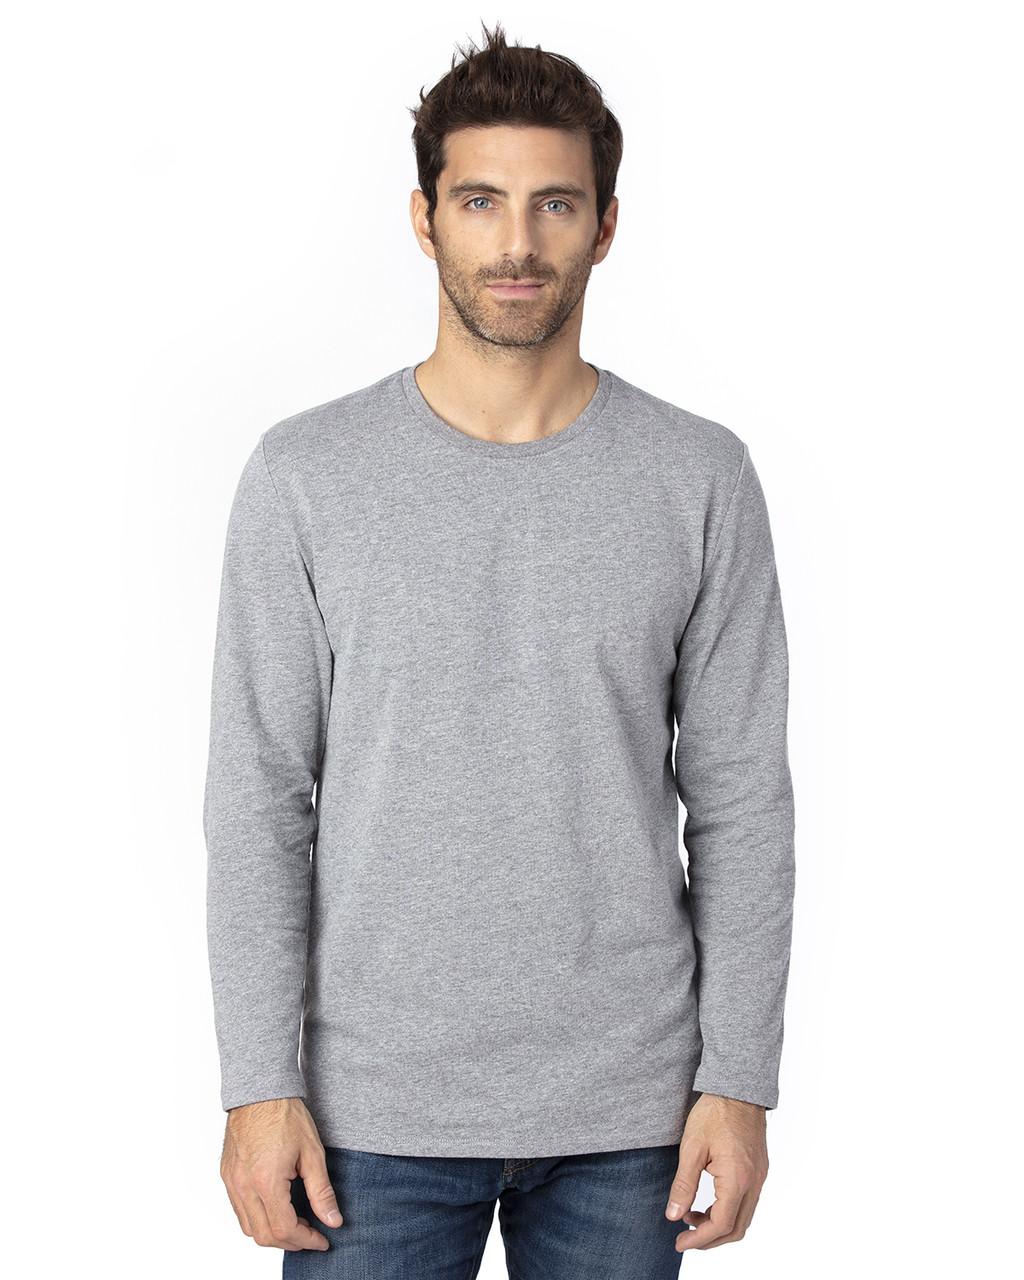 Heather Grey - 100LS Threadfast Unisex Ultimate Long-Sleeve T-Shirt | T-shirt.ca